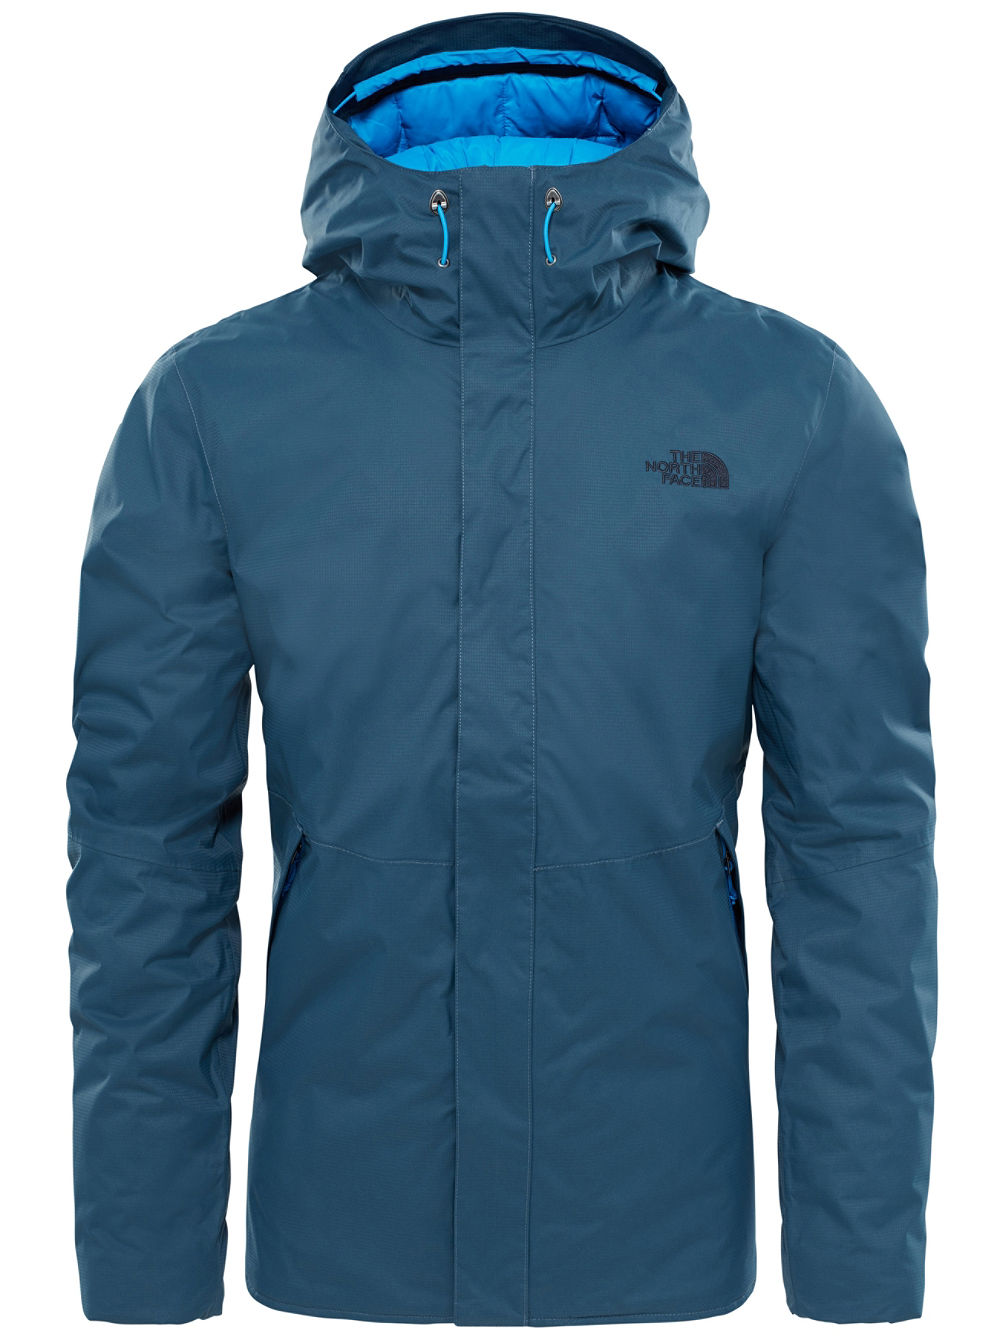 Thermoball Ins Shell Outdoor Jacket